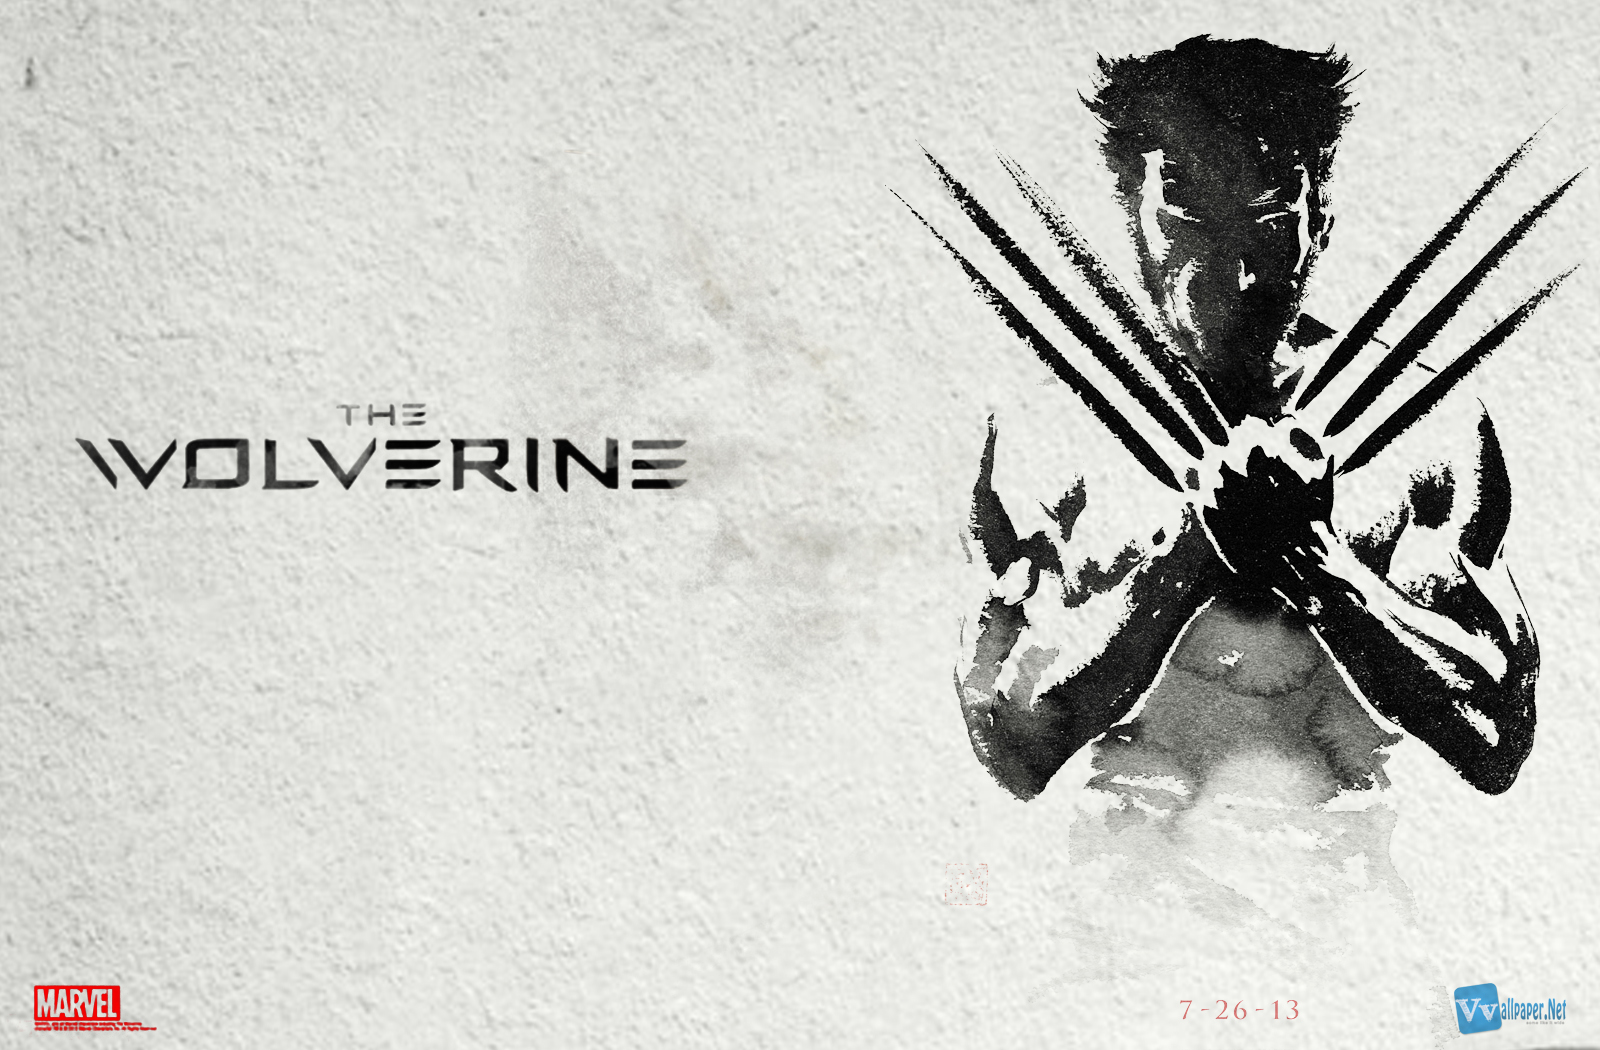 The Wolverine 2013: New CinemaCon Trailer For The Wolverine